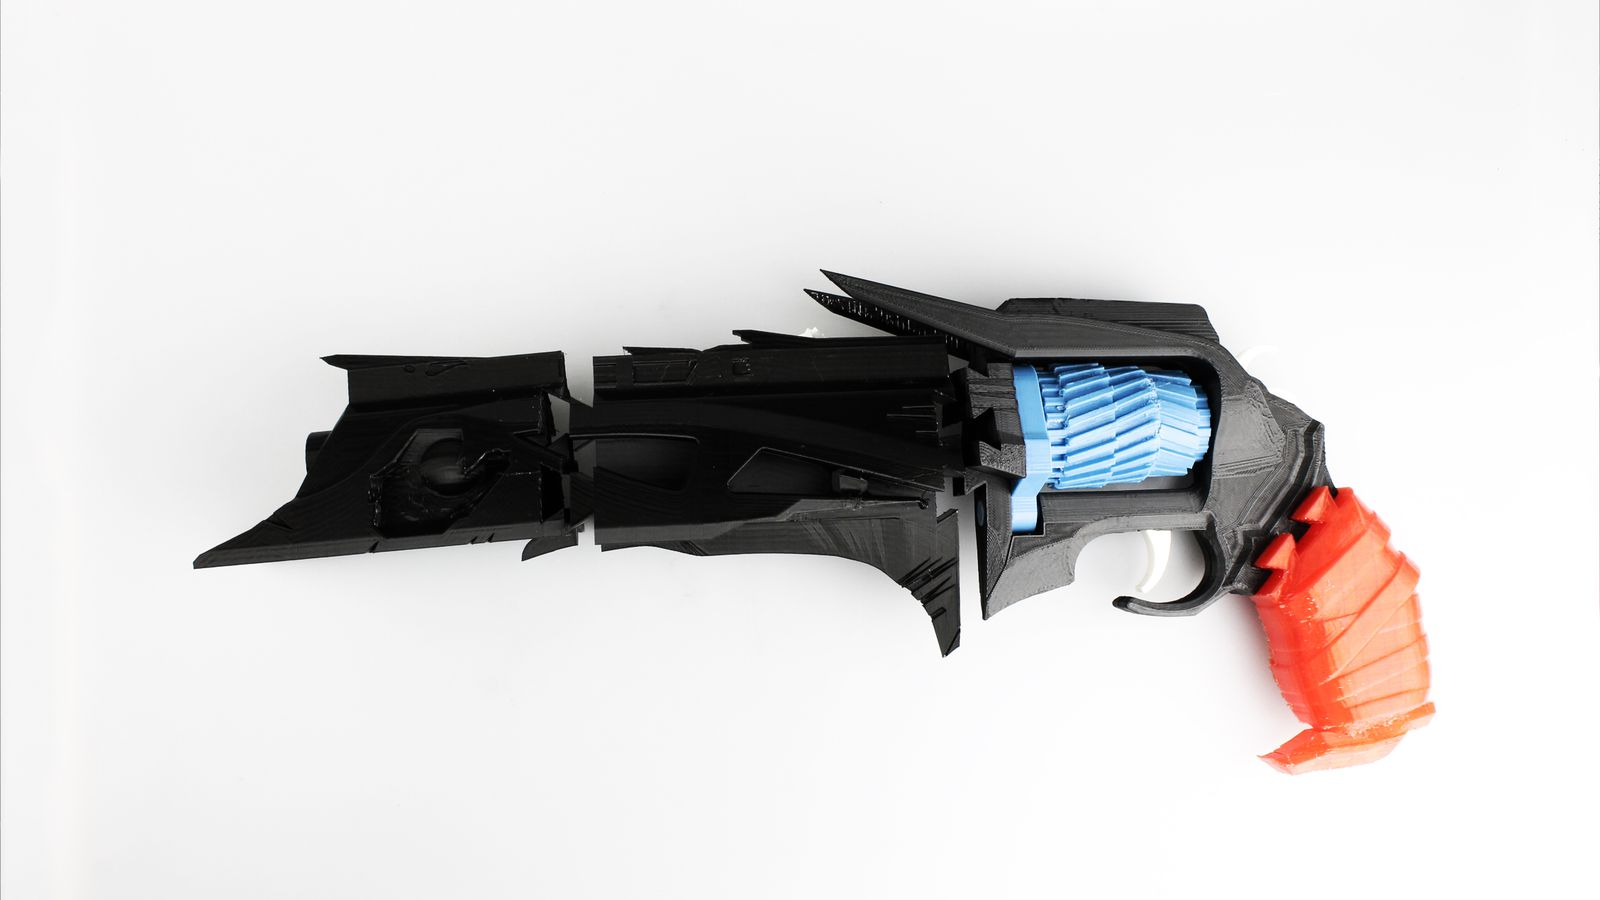 You Can 3d-print Your Own Destiny Hand Cannon In 24 Hours